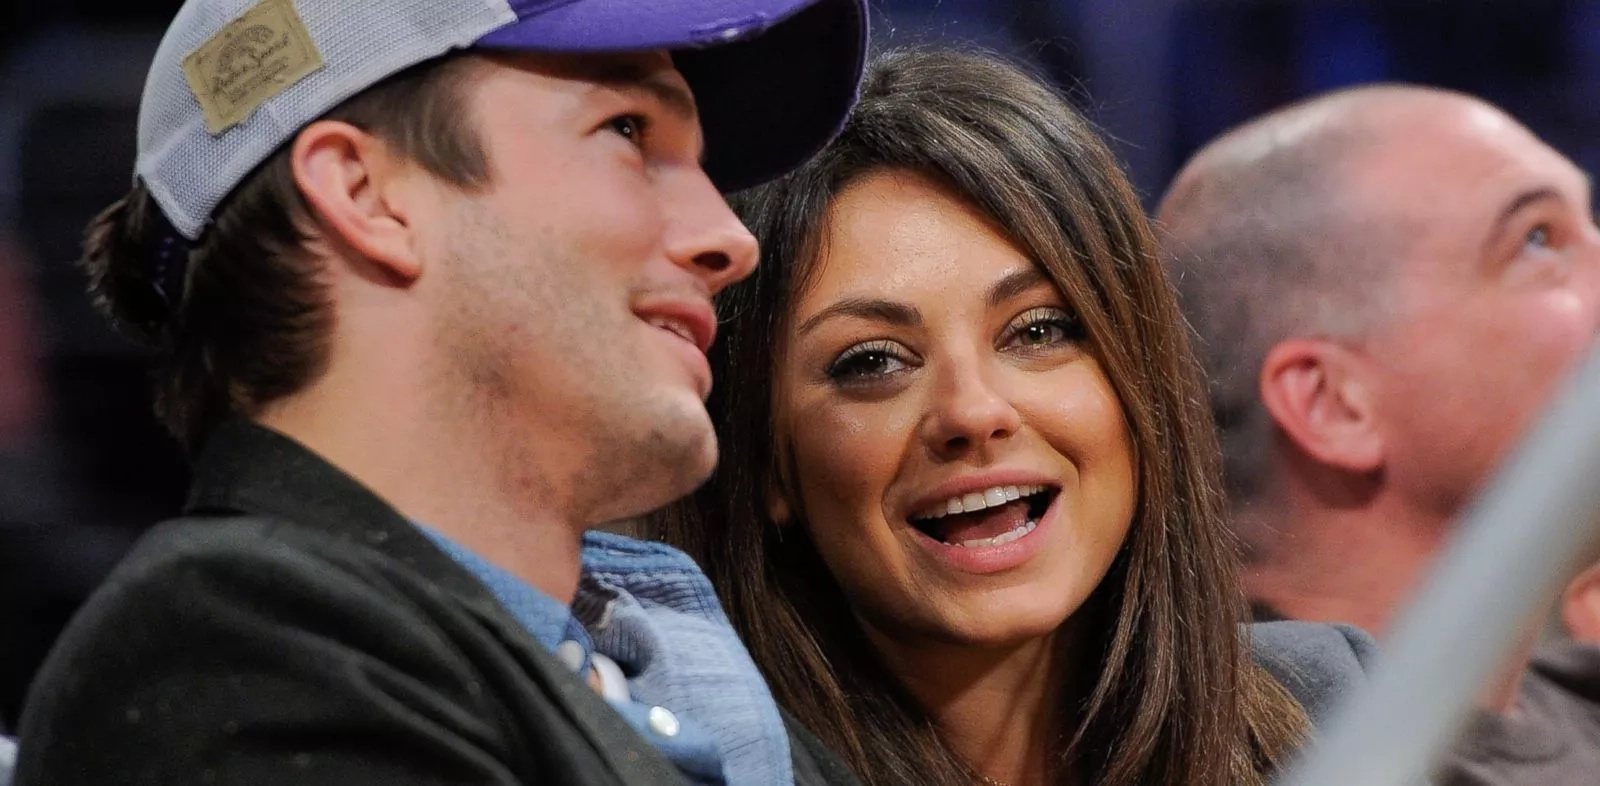 Carrot stick or Beer Can? Watch Mila Kunis describe Ashton Kutcher's penis!